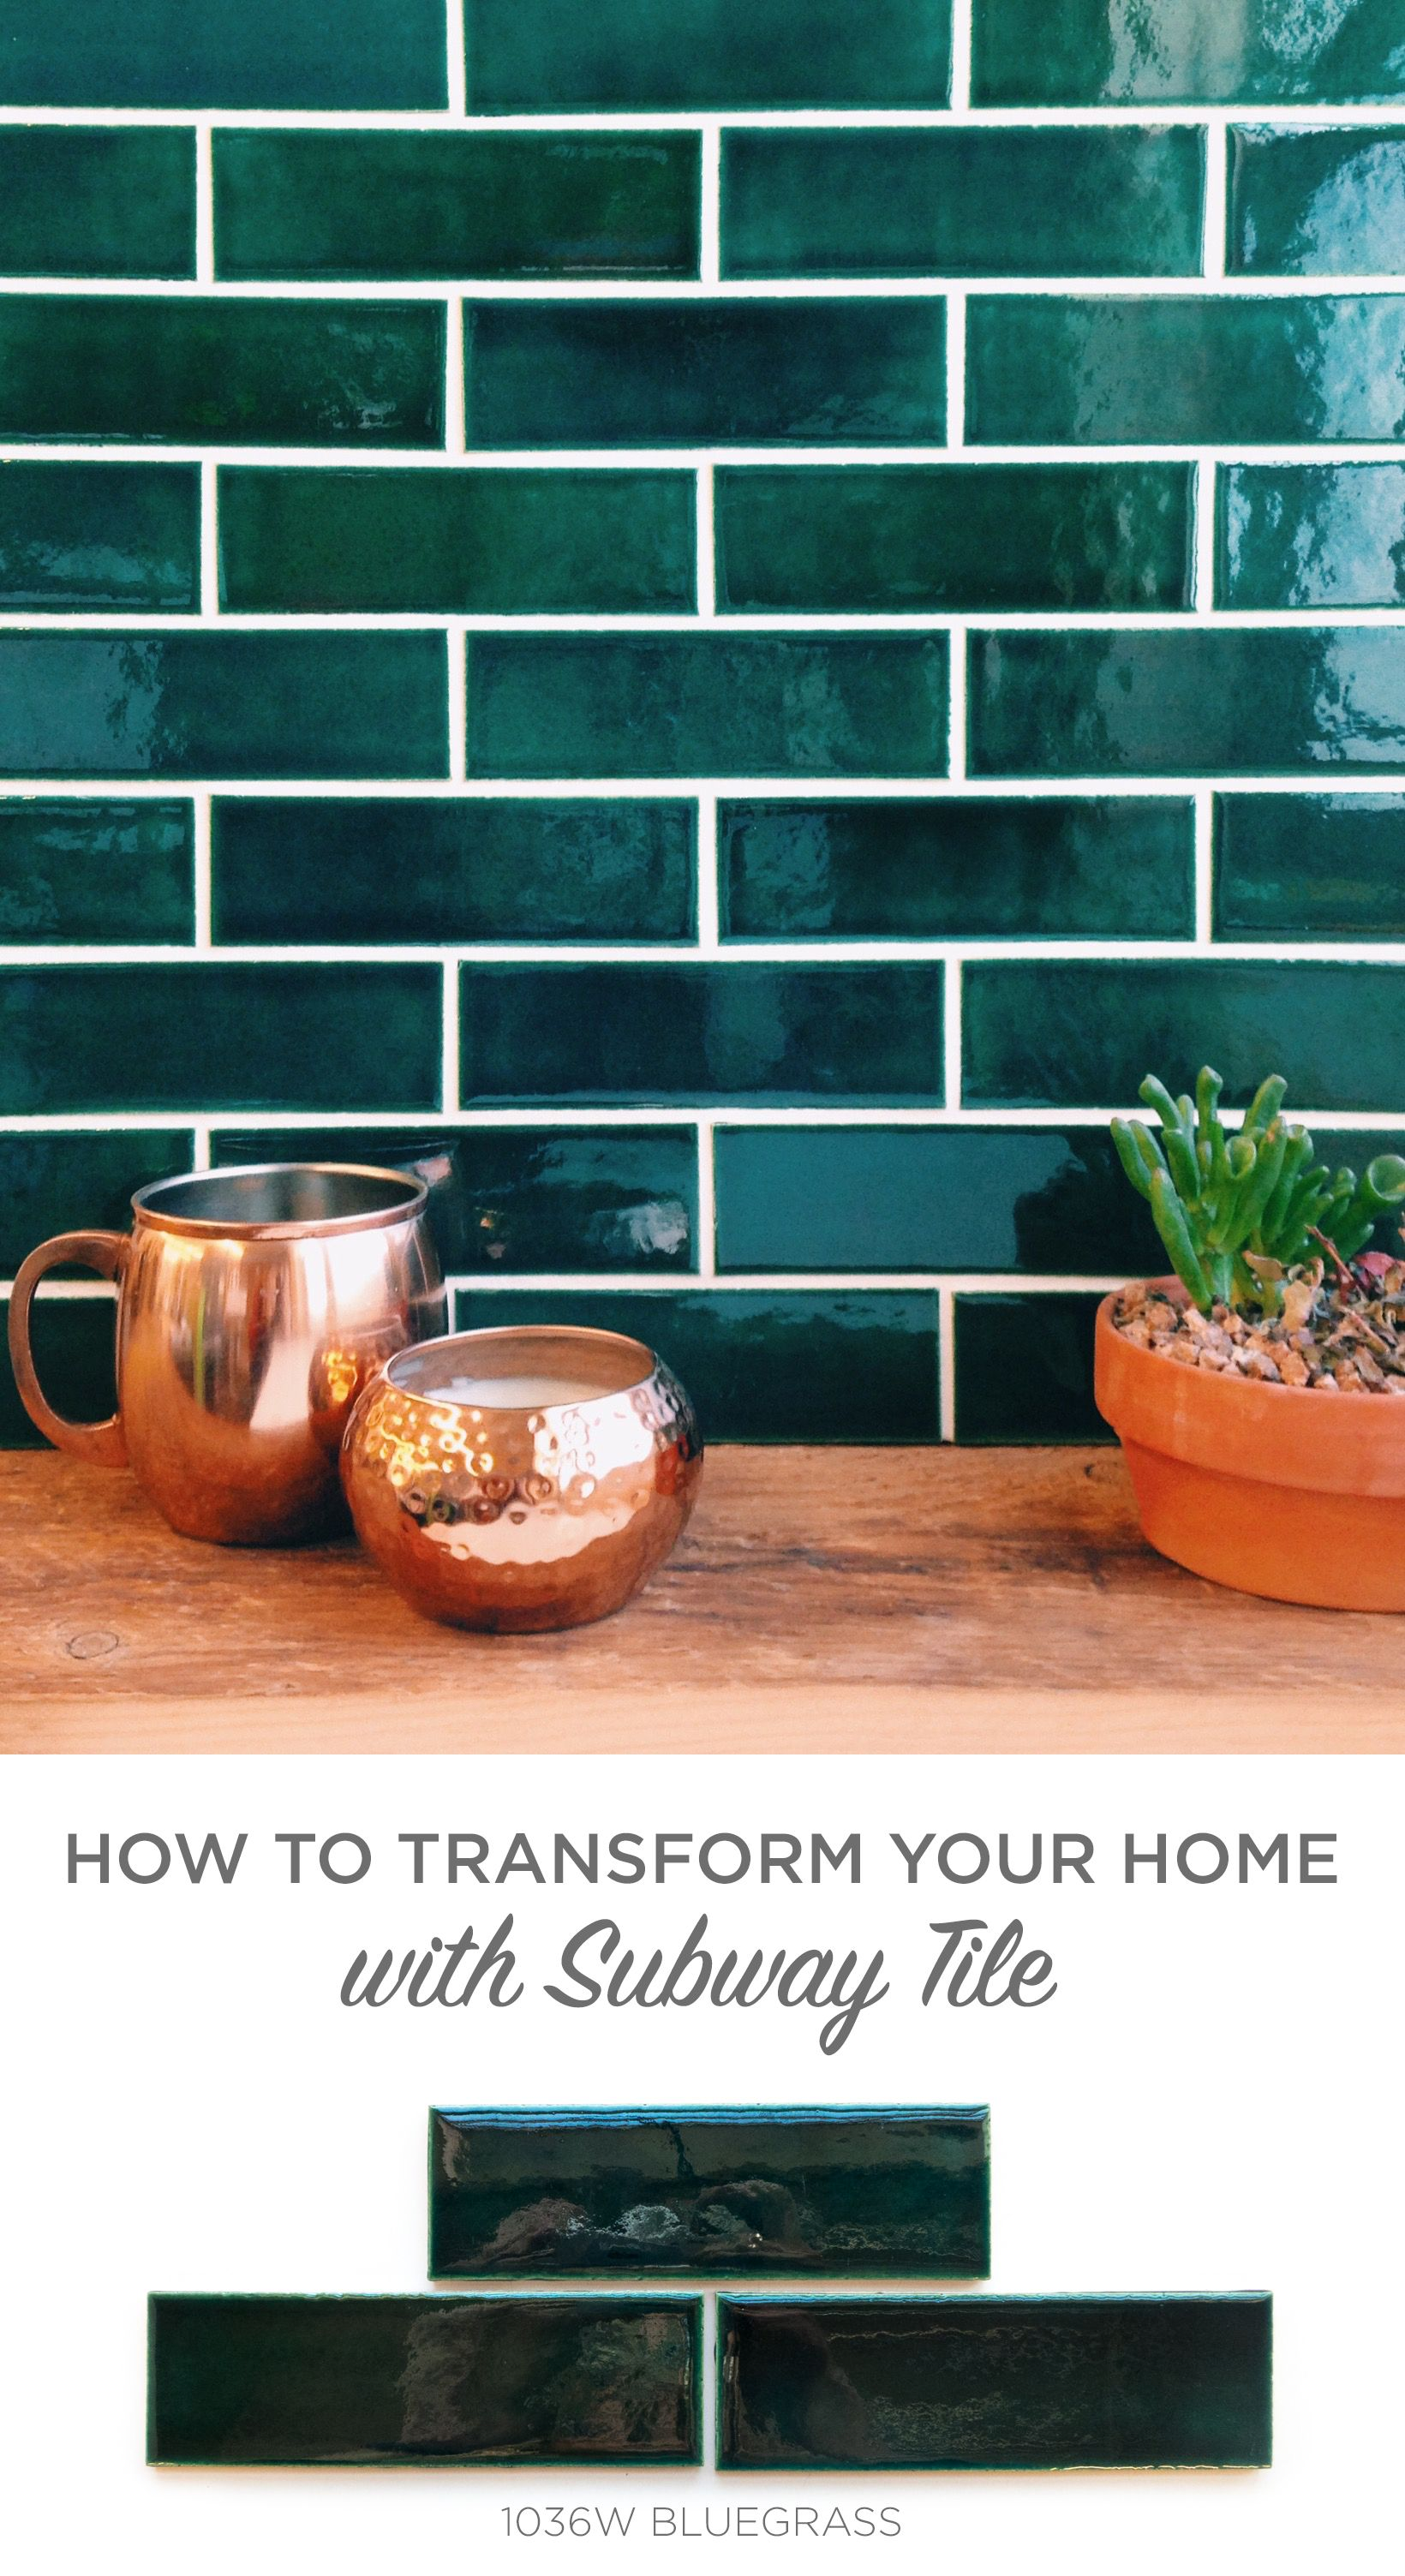 Field & Subway Tile | For the Home | Pinterest | Subway tiles, Barn ...